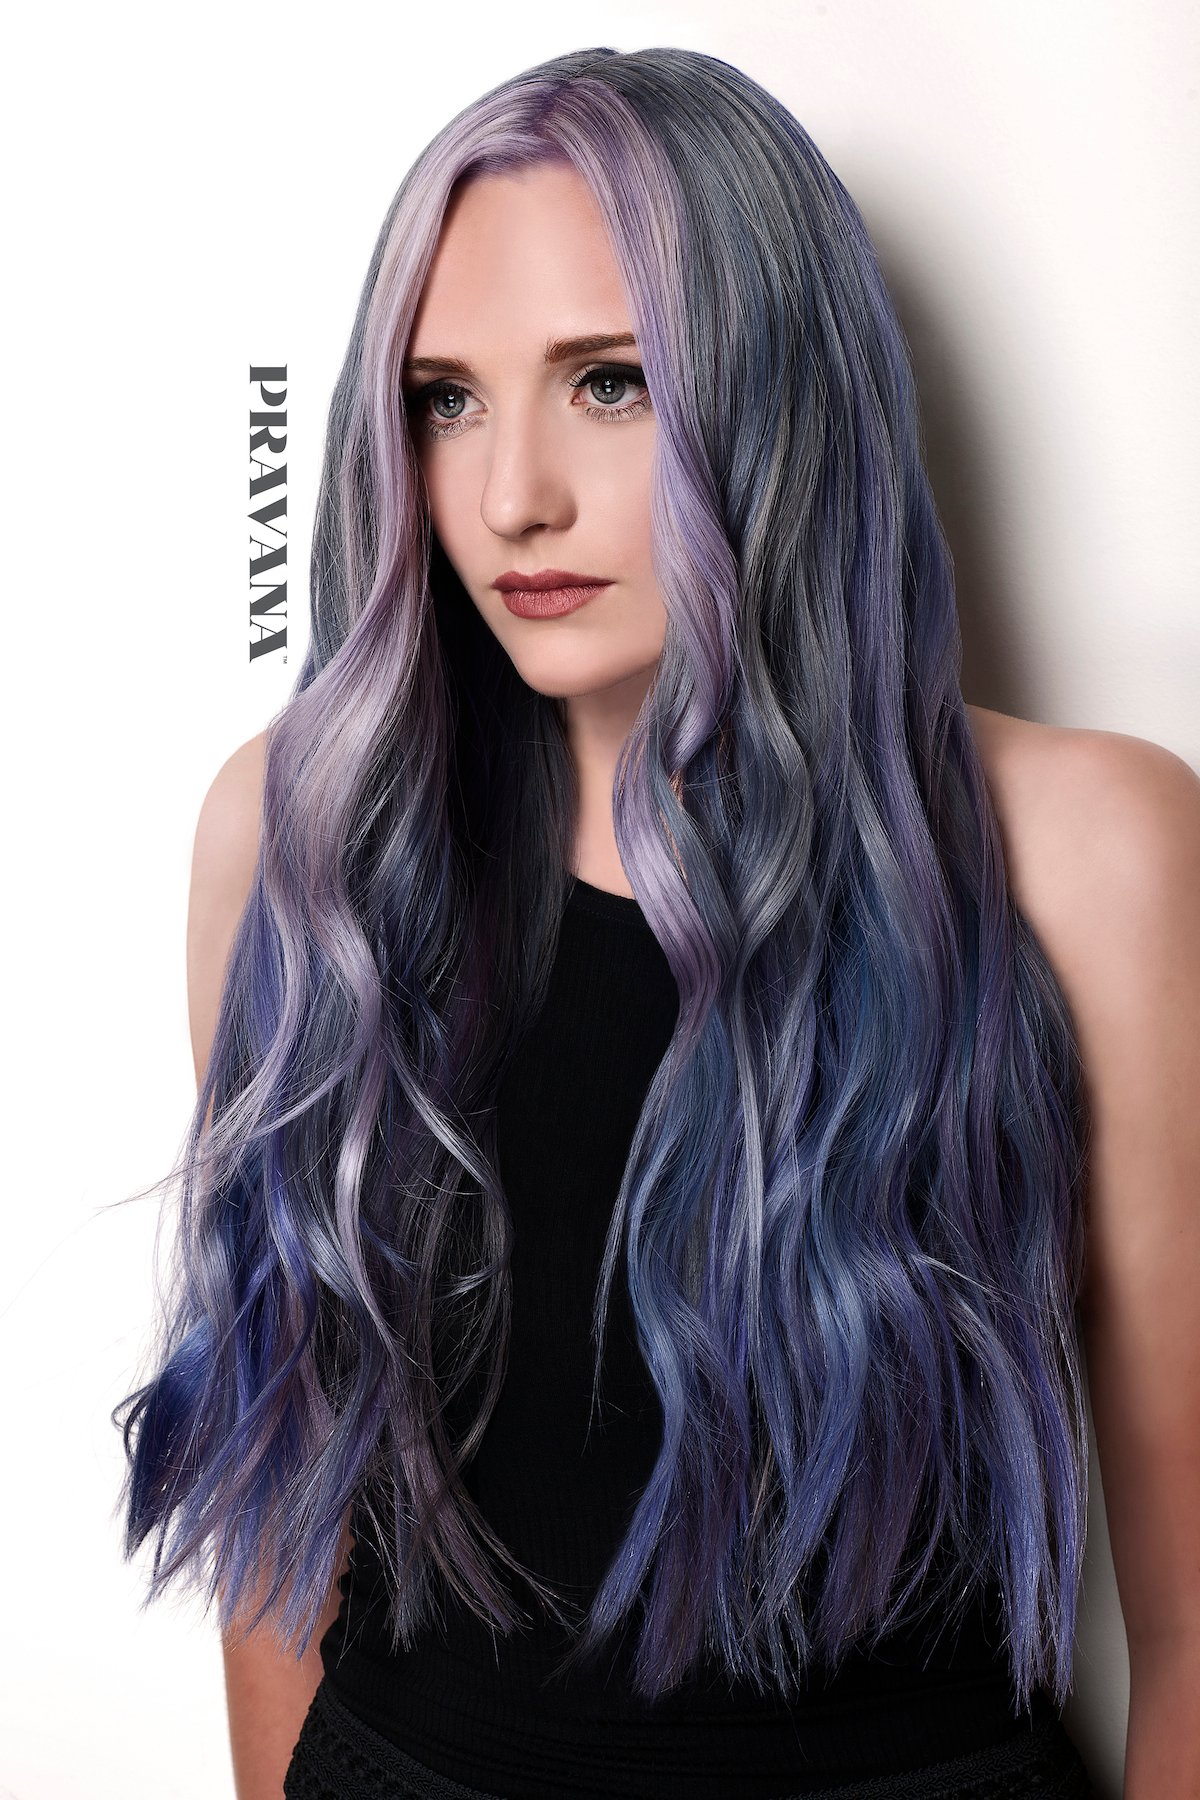 How-To Video: Smokestack Color with Pravana Vivids Black